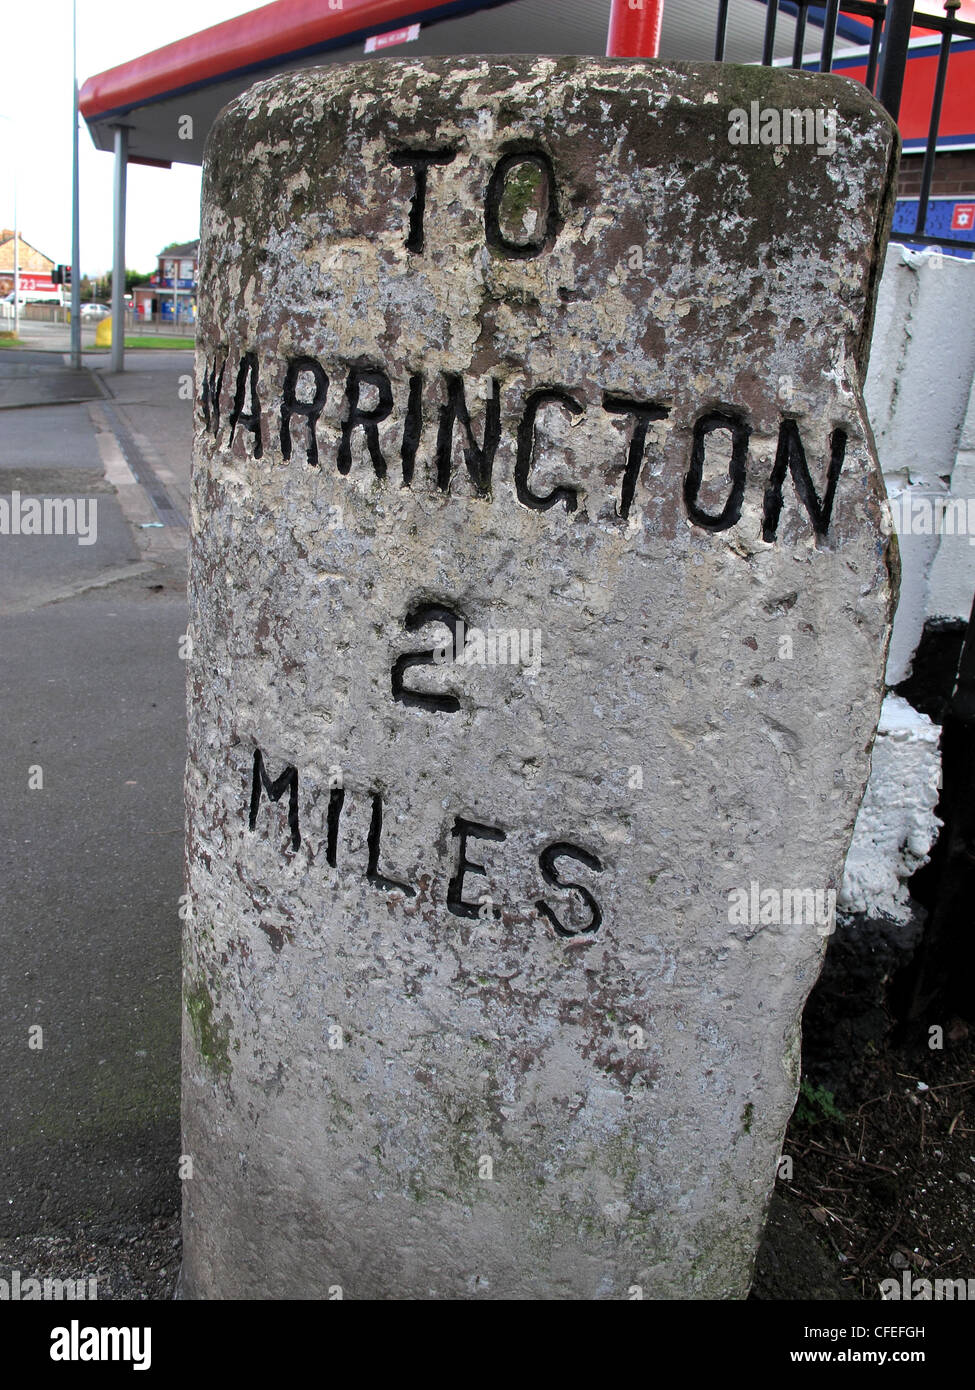 Milepost,To,Warrington,2,Miles,Two,Grey,stone,on,A57,at,Liverpool,Road,rd,Penketh,Cheshire,England,UK,gotonysmith,history,historic,victorian,old,olde,fashioned,oldfashioned,ancient,gotonysmith,Warringtonians,Buy Pictures of,Buy Images Of